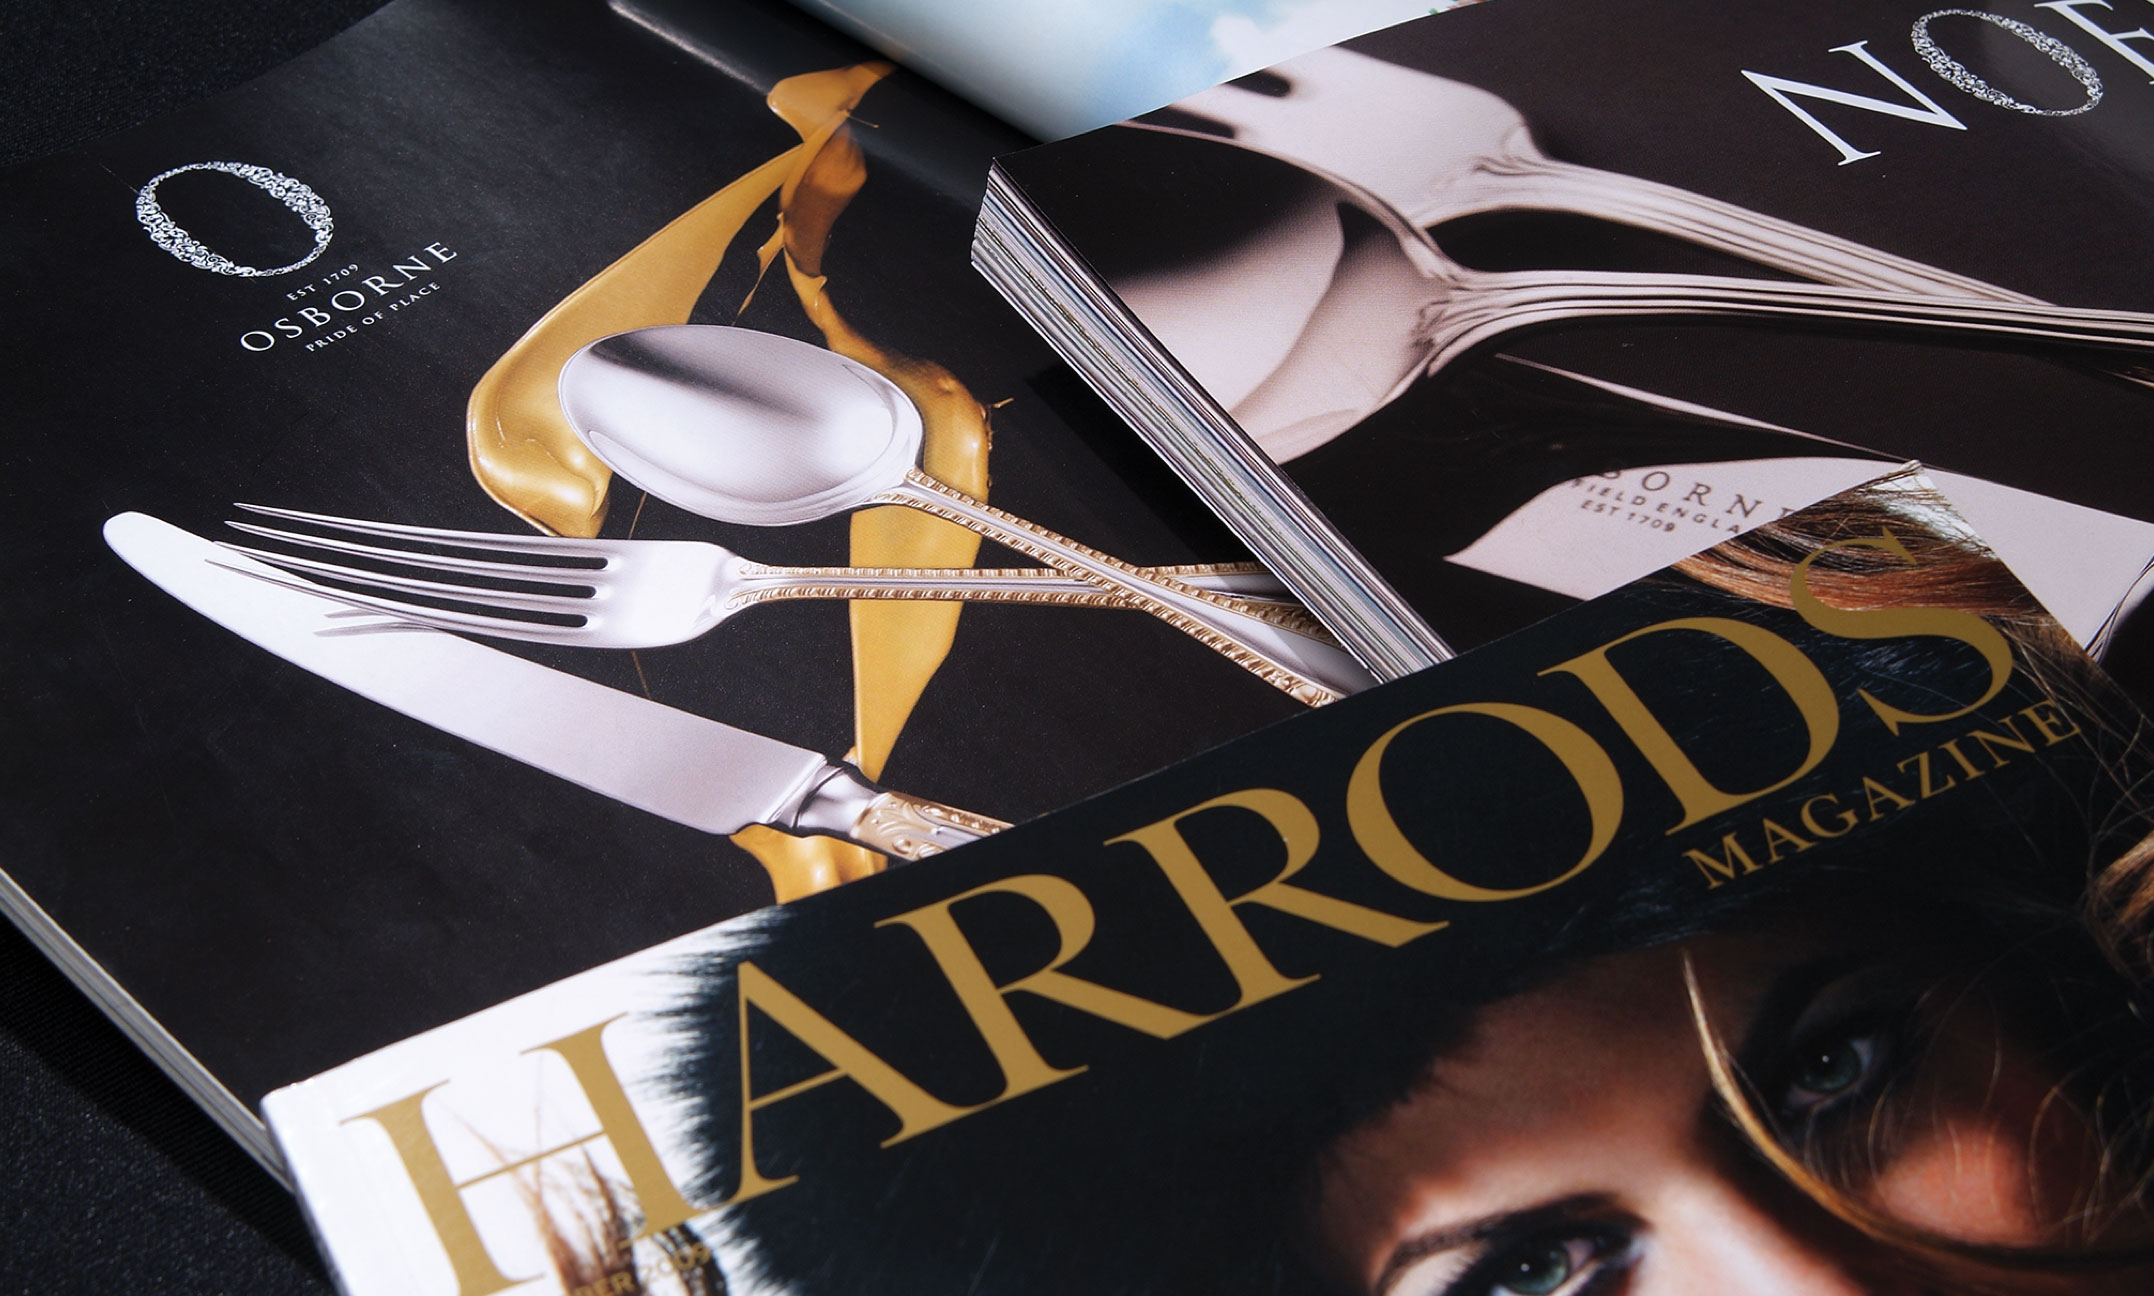 Carrs Silver adverts in Harrods brochure